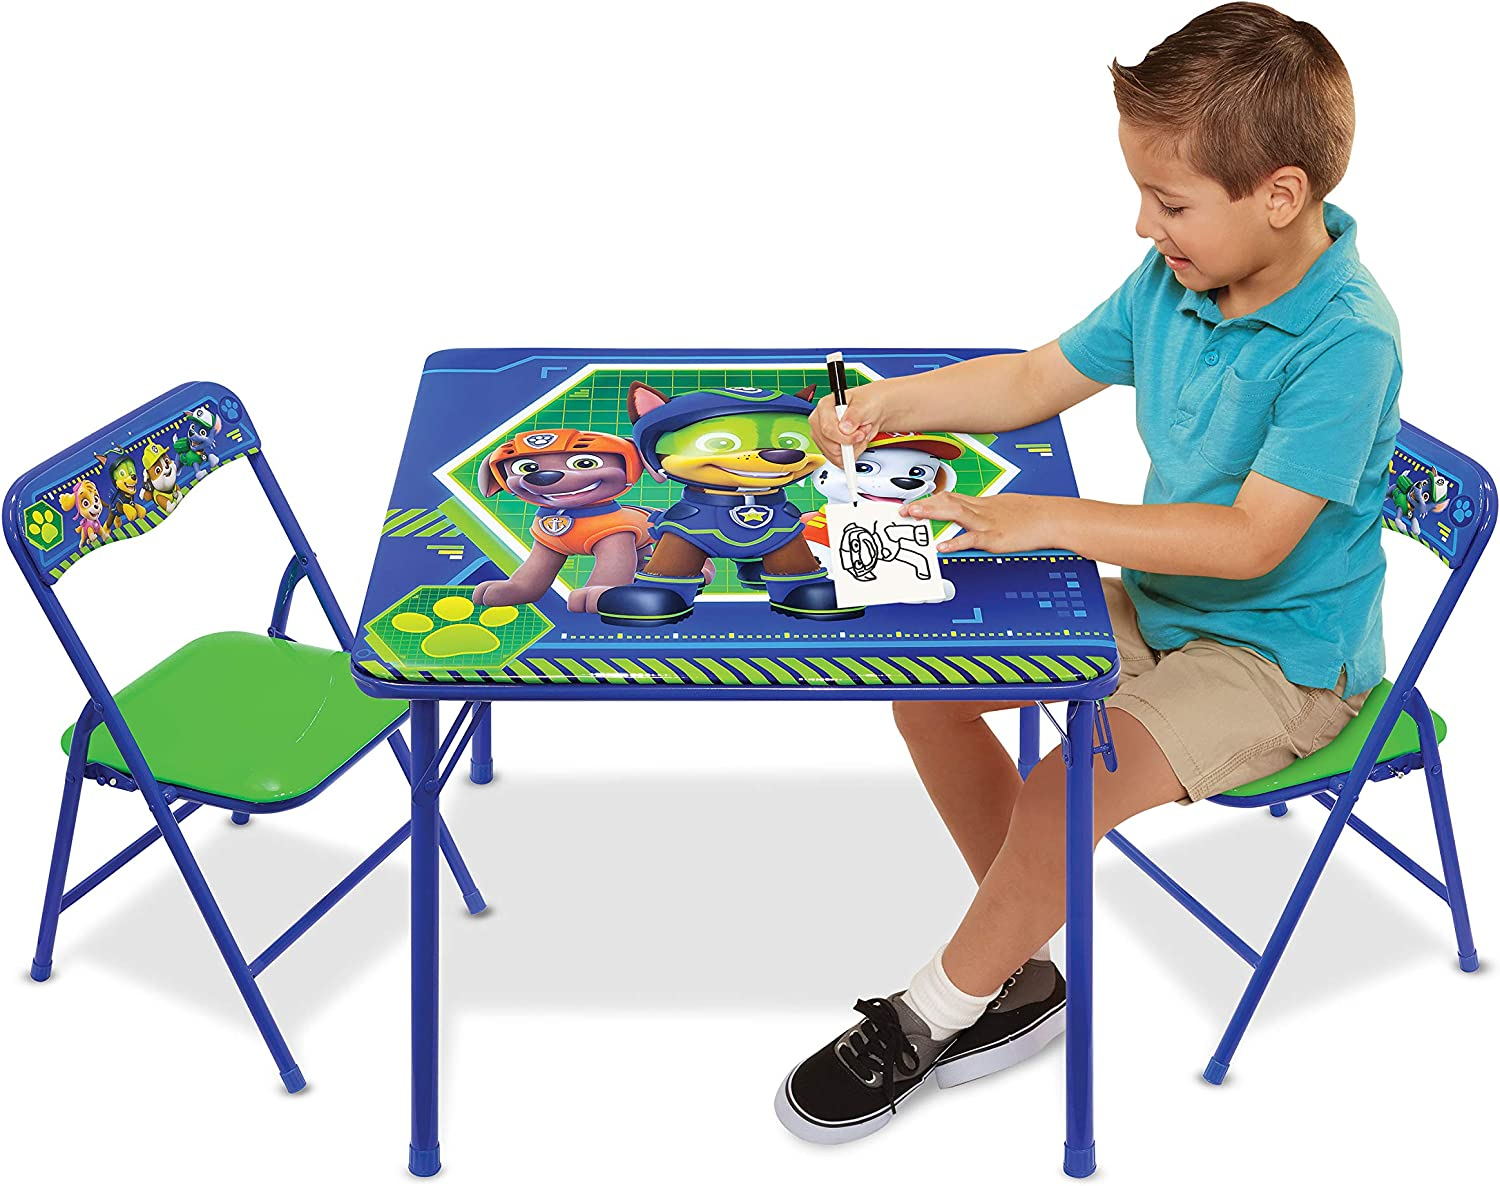 Nickelodeon Patrol Code Paw Activity Table Play Set with Two Chairs, Blue-Green